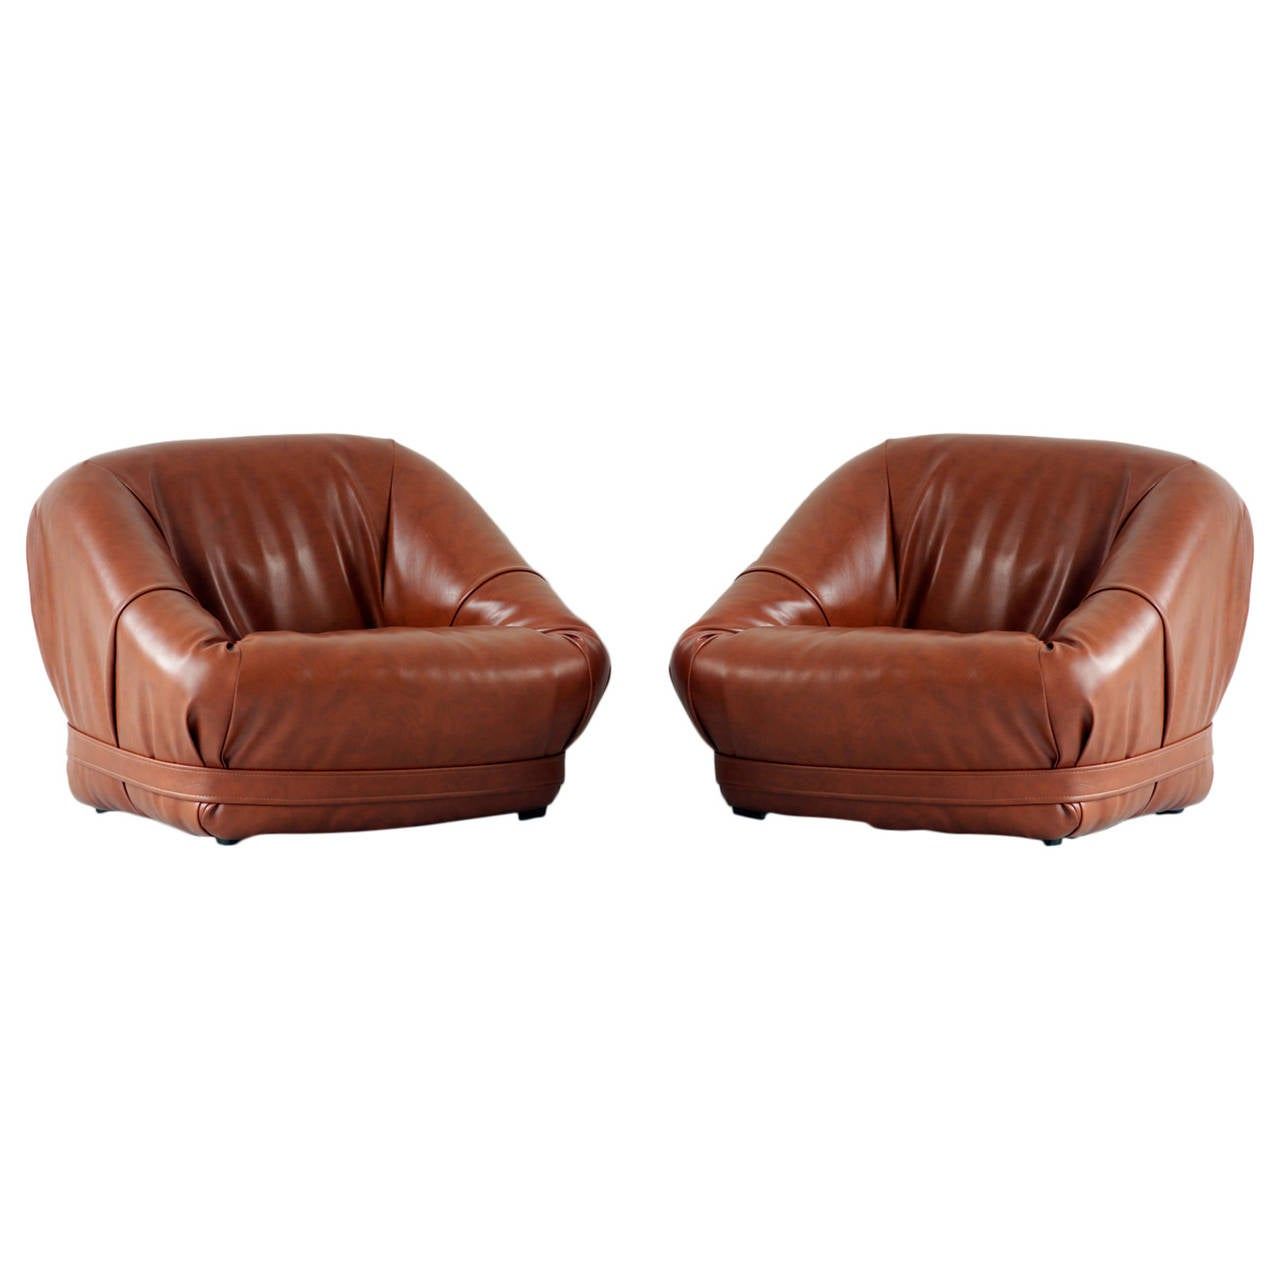 Set of Mid Century Lounge Chairs For Sale at 1stdibs